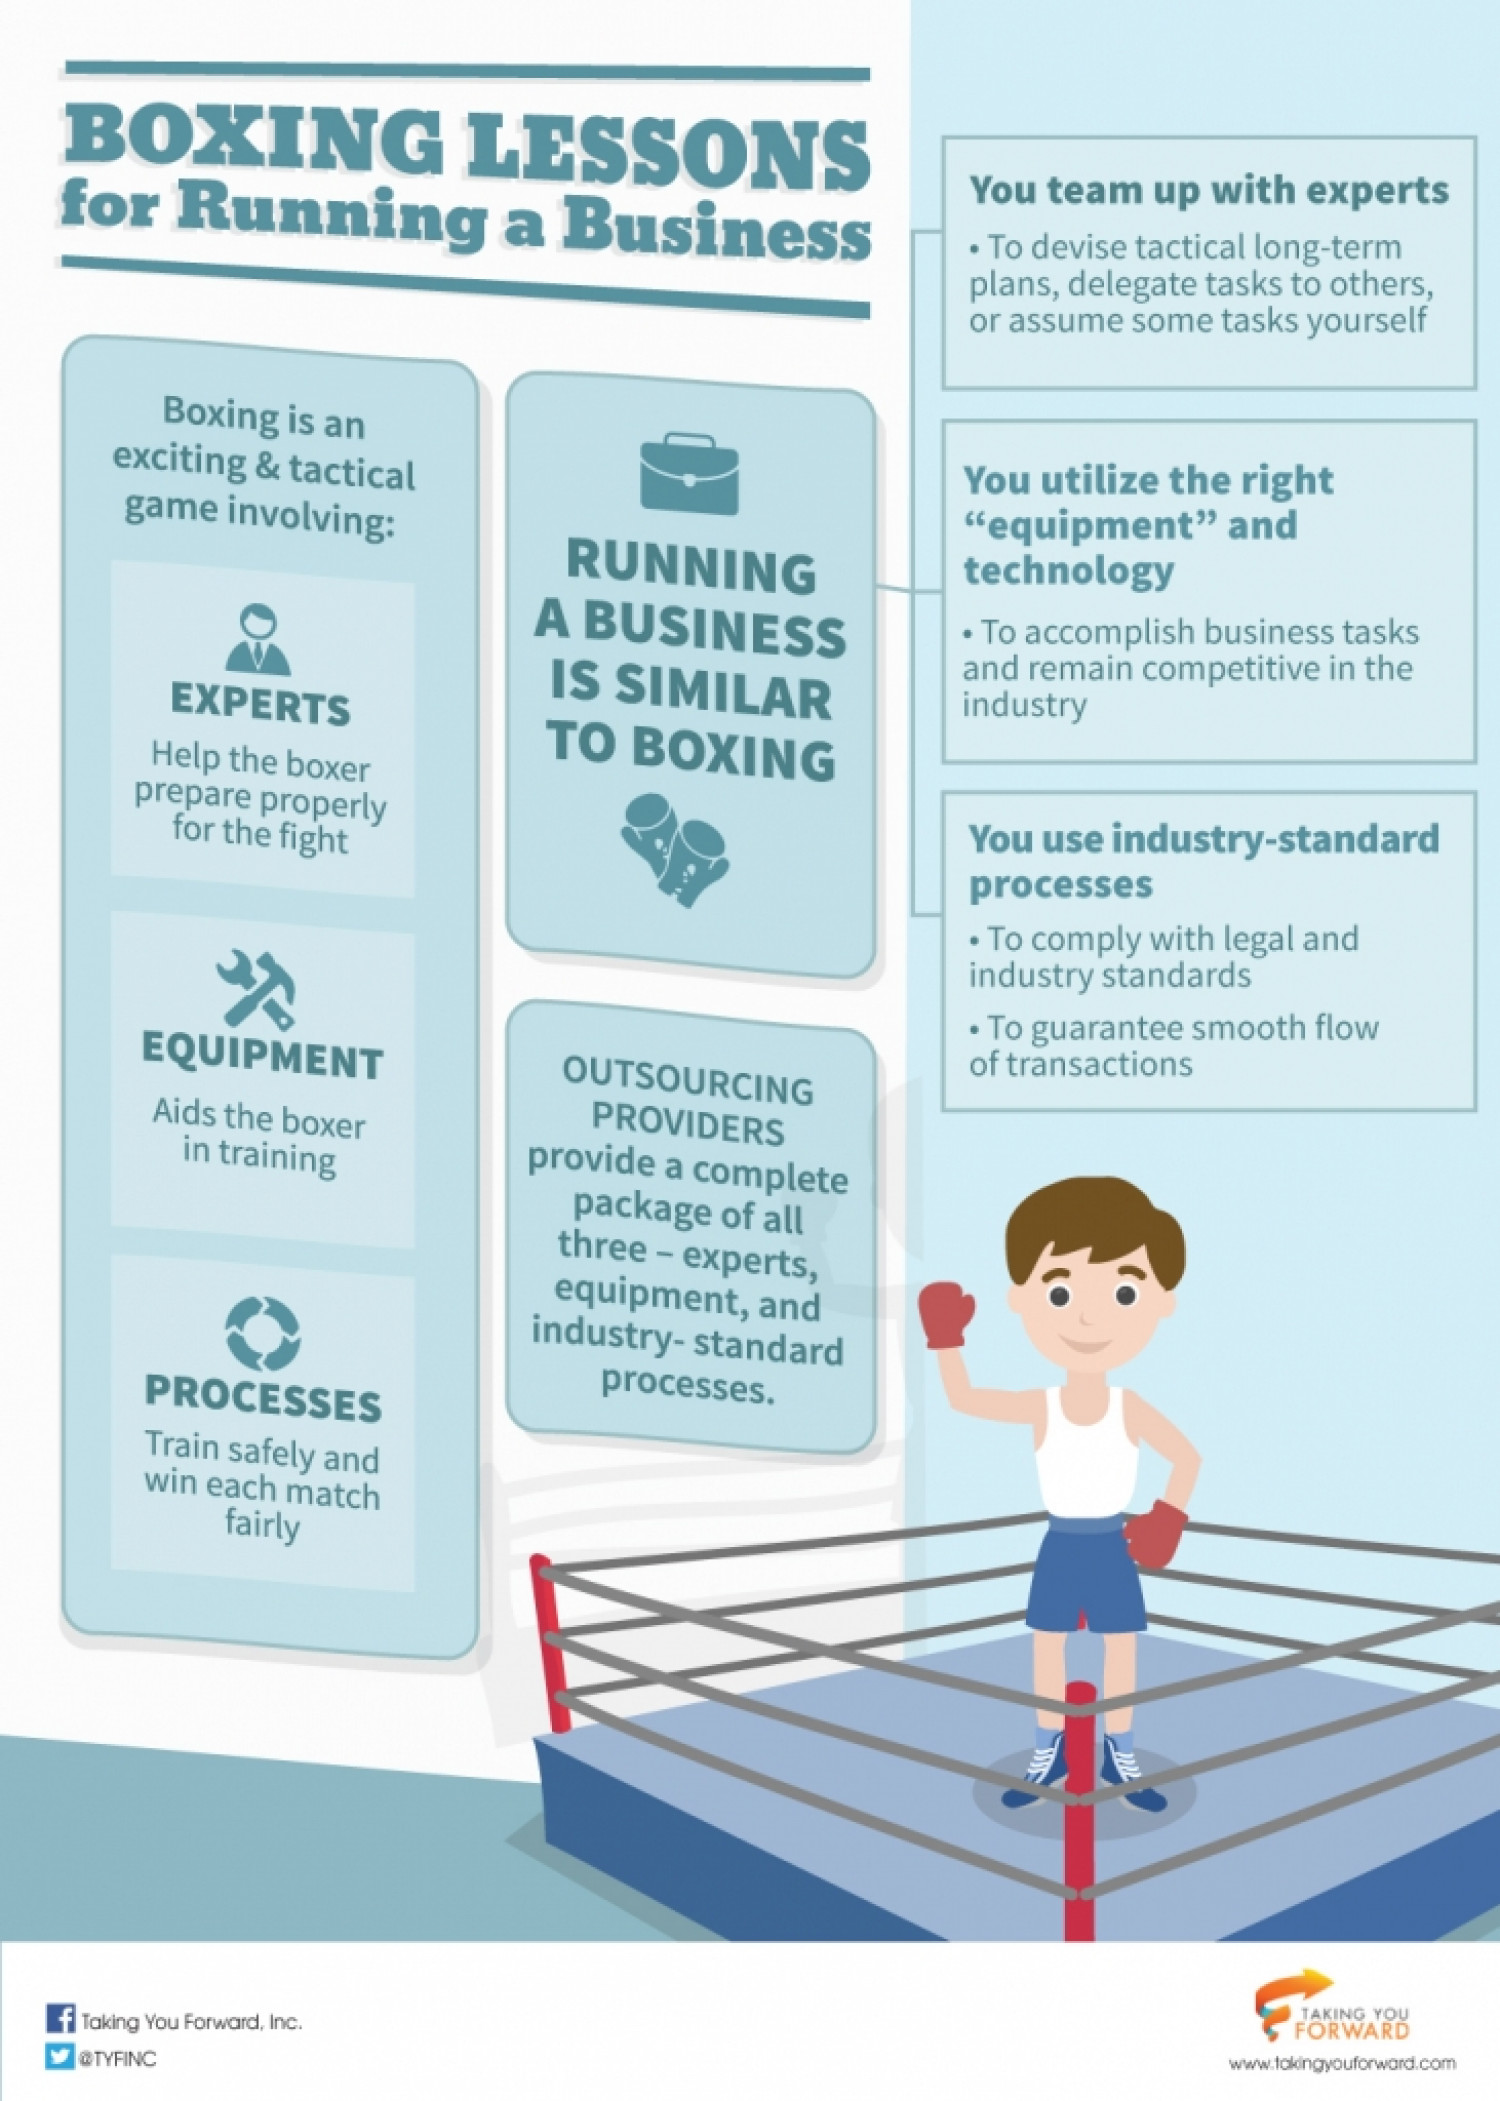 Boxing Lessons for Running Your Business Infographic